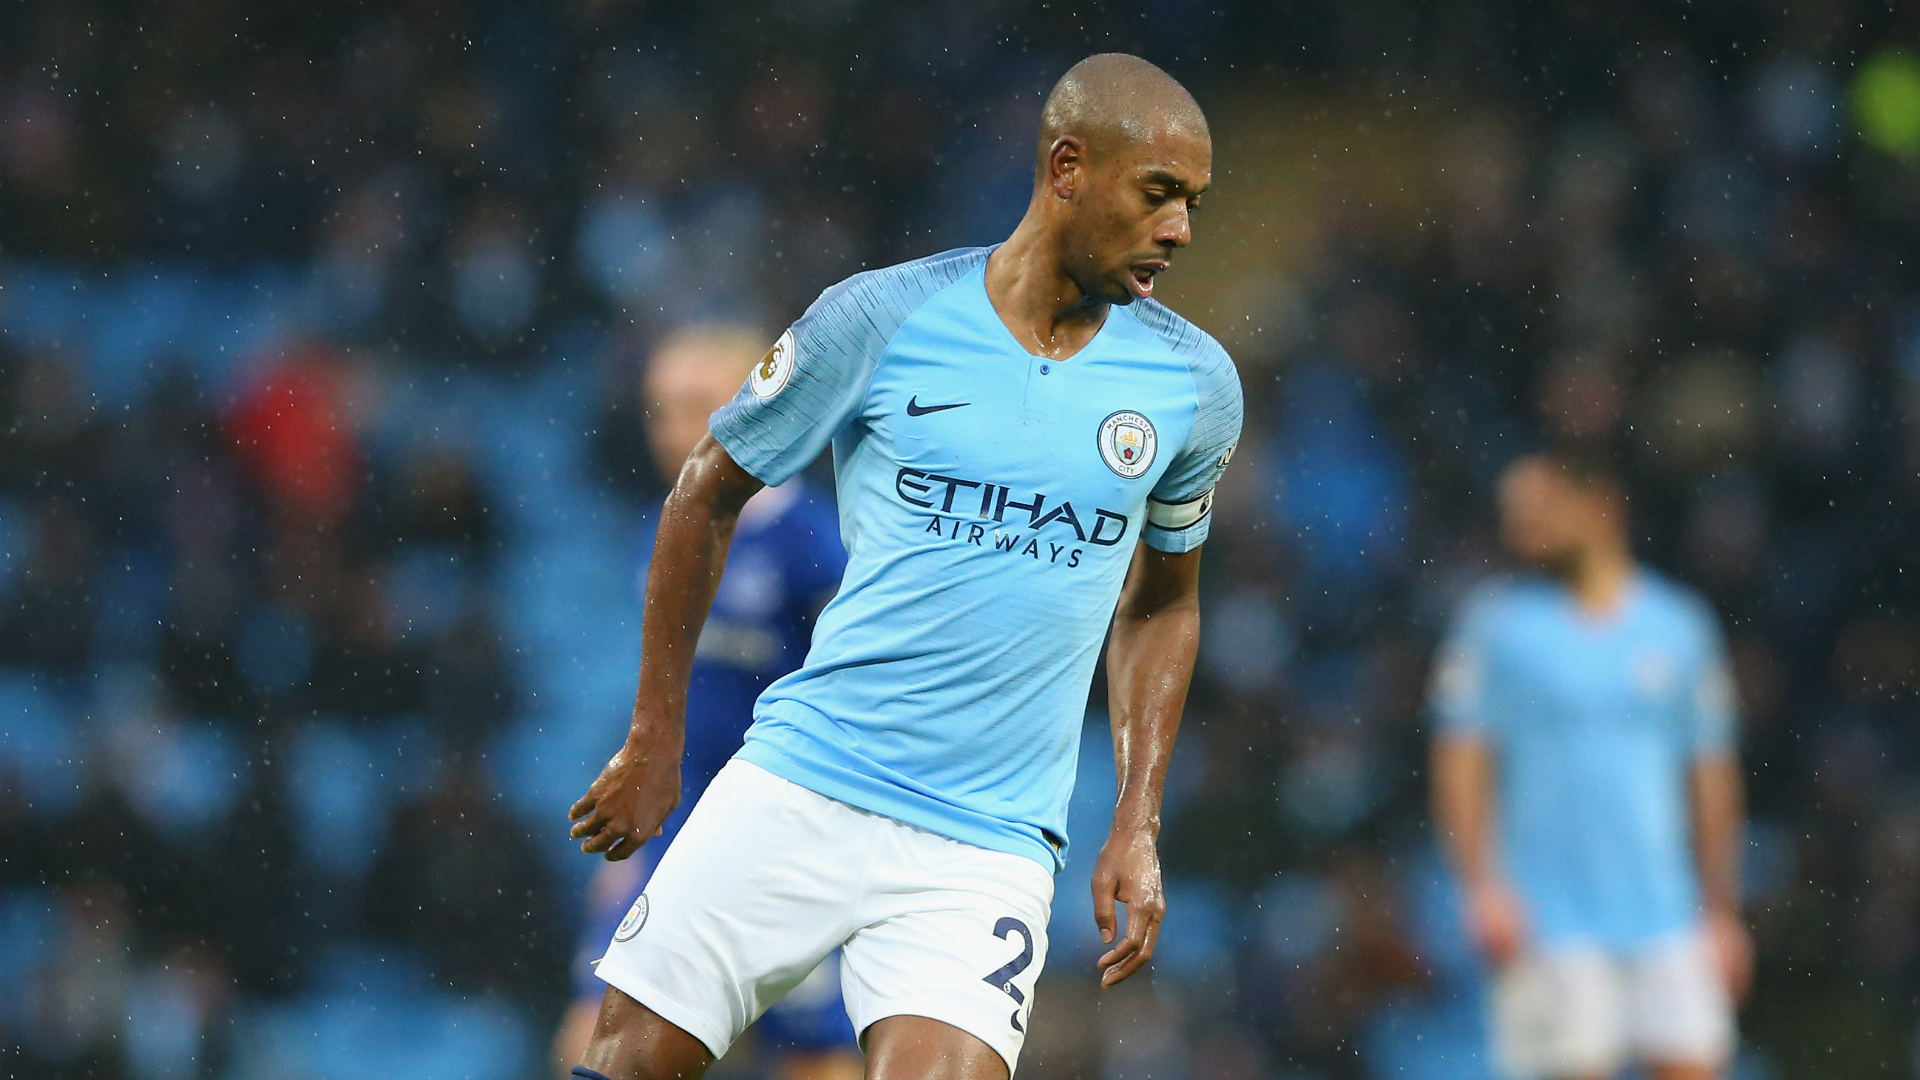 Man City 'fighting like animals' to hold off Liverpool – Fernandinho